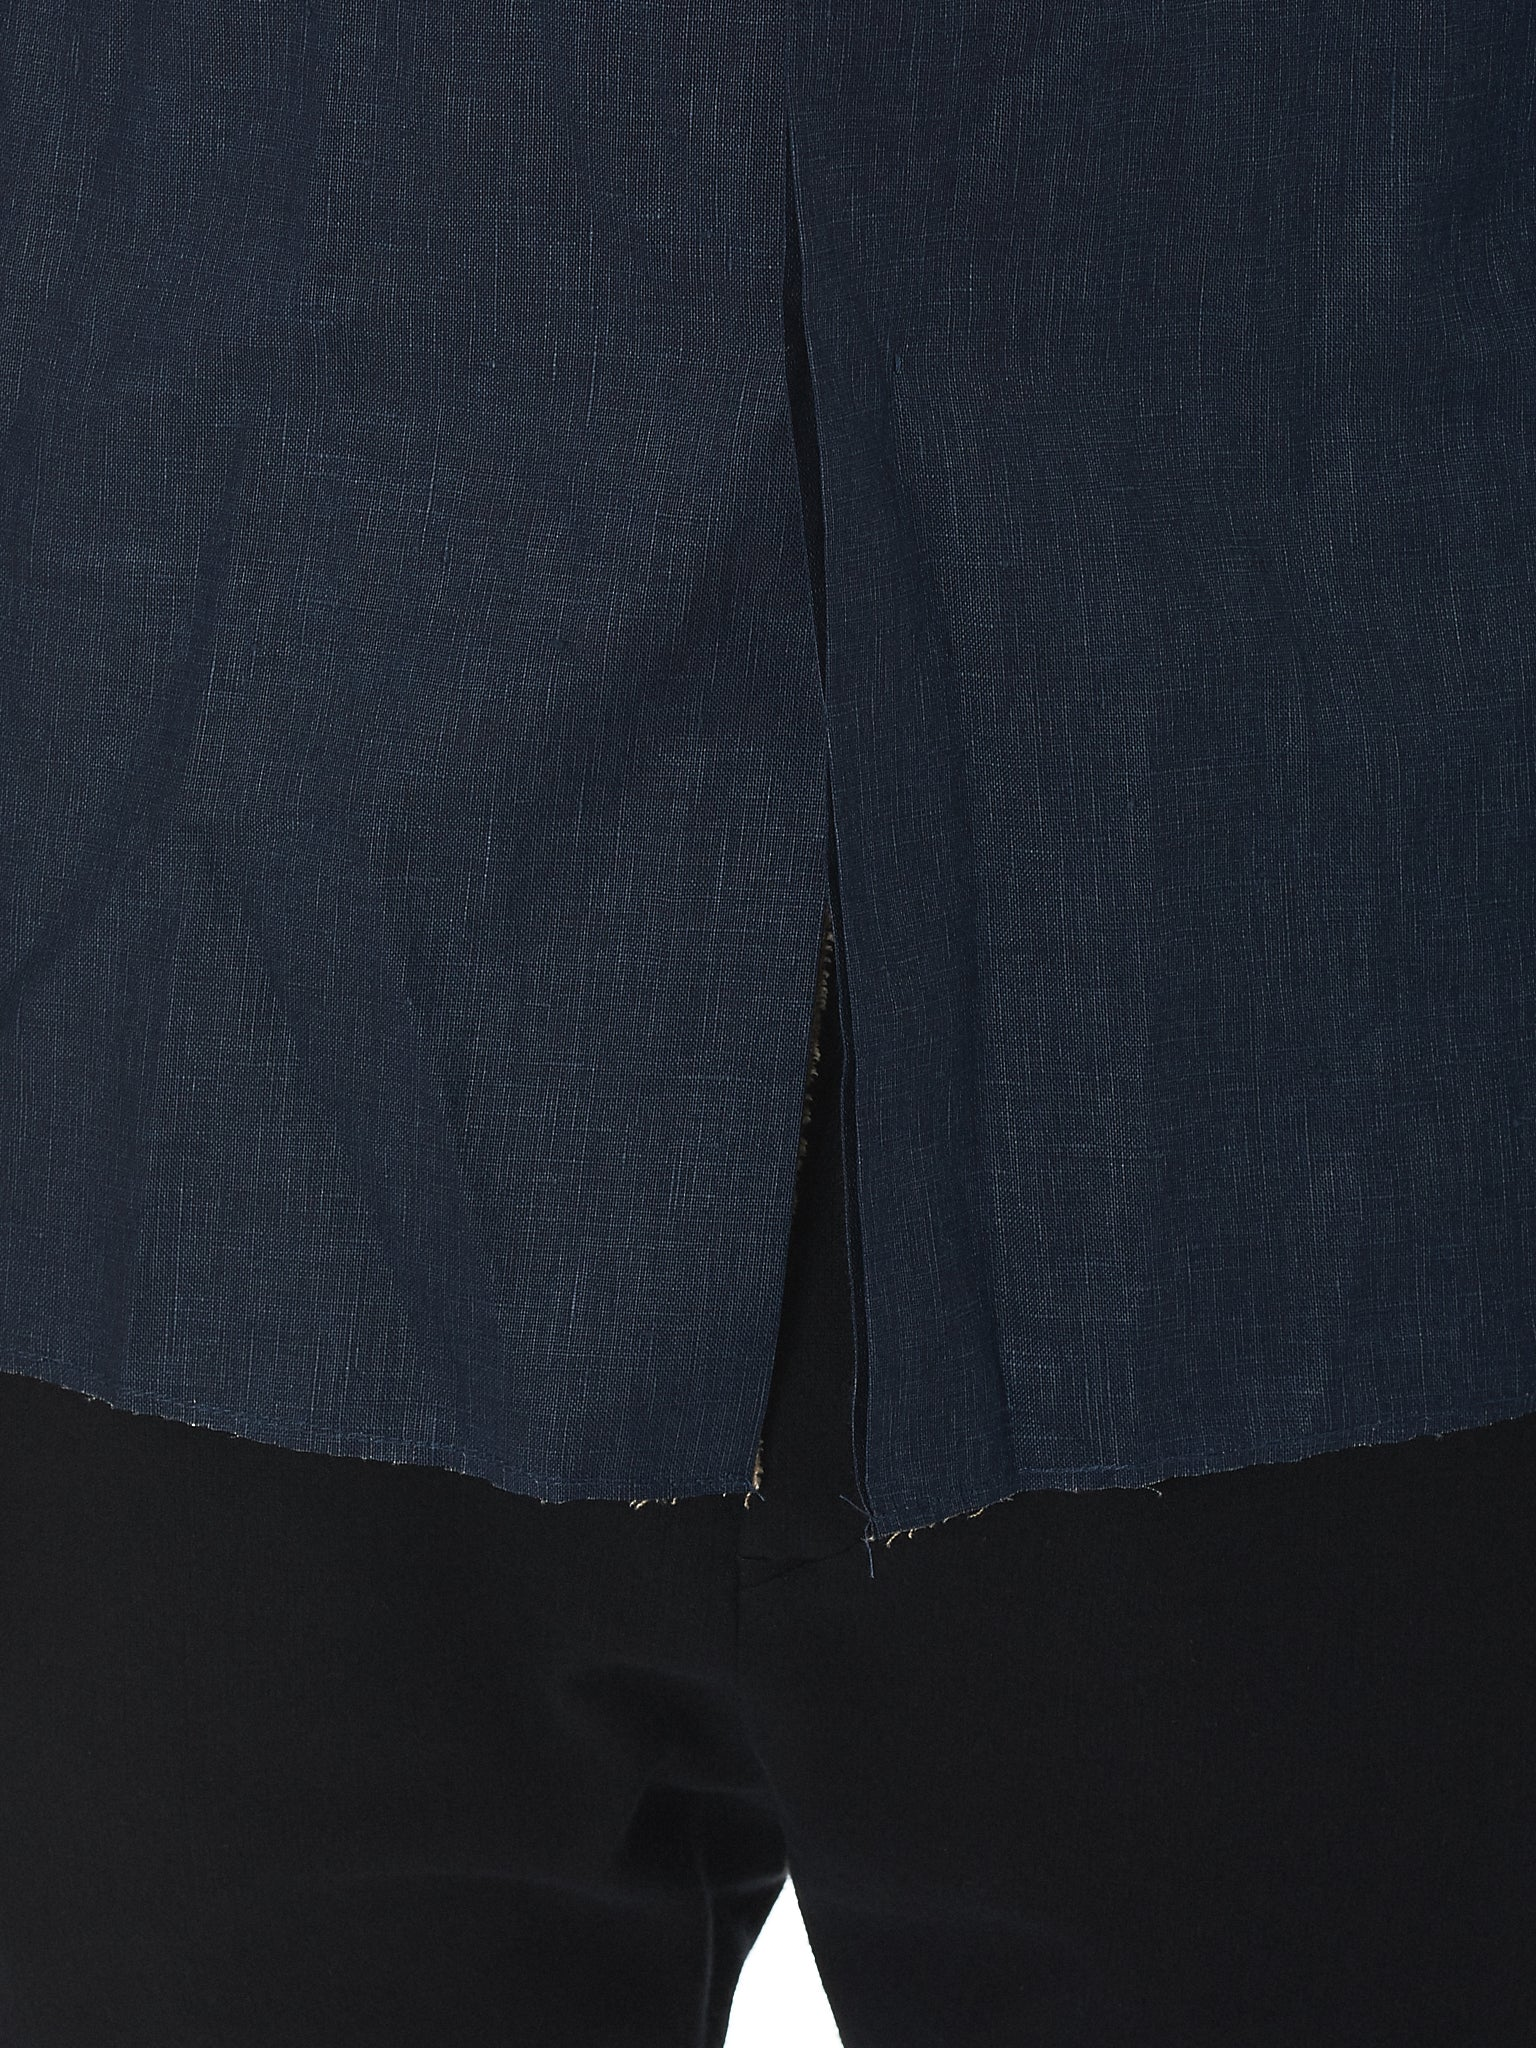 MA+ Crushed Shirt - Hlorenzo Detail 2